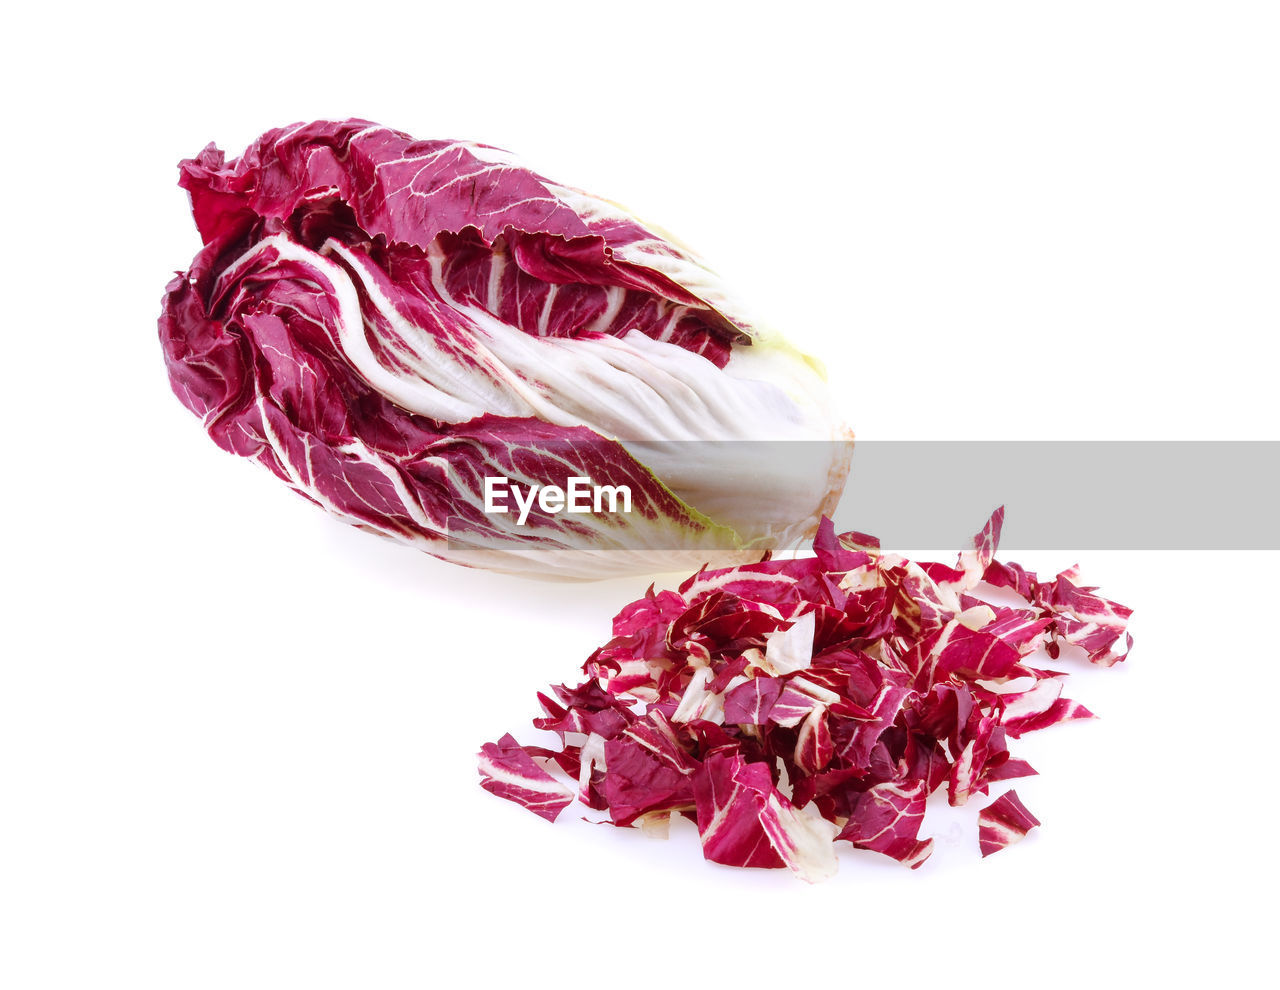 white background, studio shot, freshness, flower, indoors, flowering plant, close-up, cut out, petal, beauty in nature, no people, still life, copy space, red, plant, pink color, inflorescence, flower head, high angle view, food and drink, purple